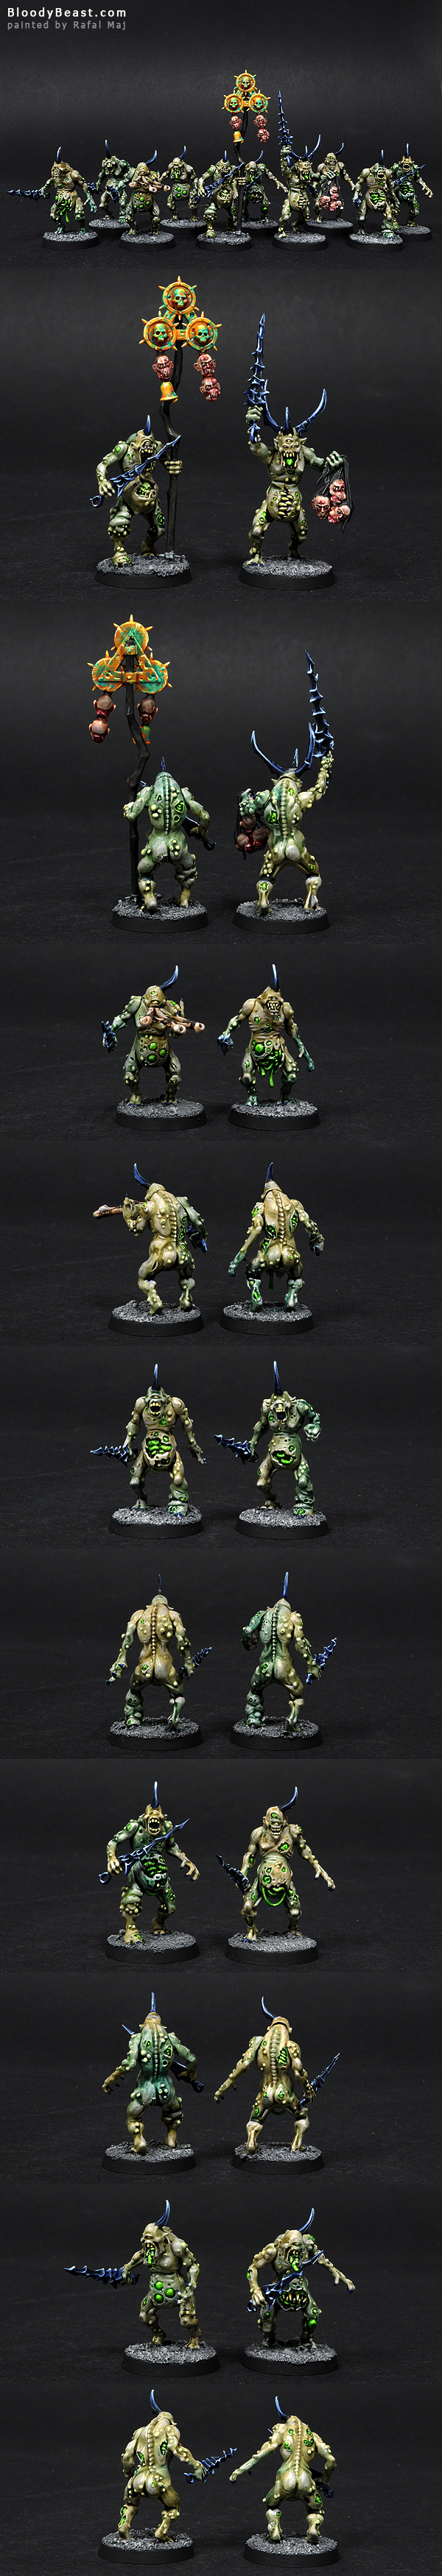 Plaguebearers painted by Rafal Maj (BloodyBeast.com)